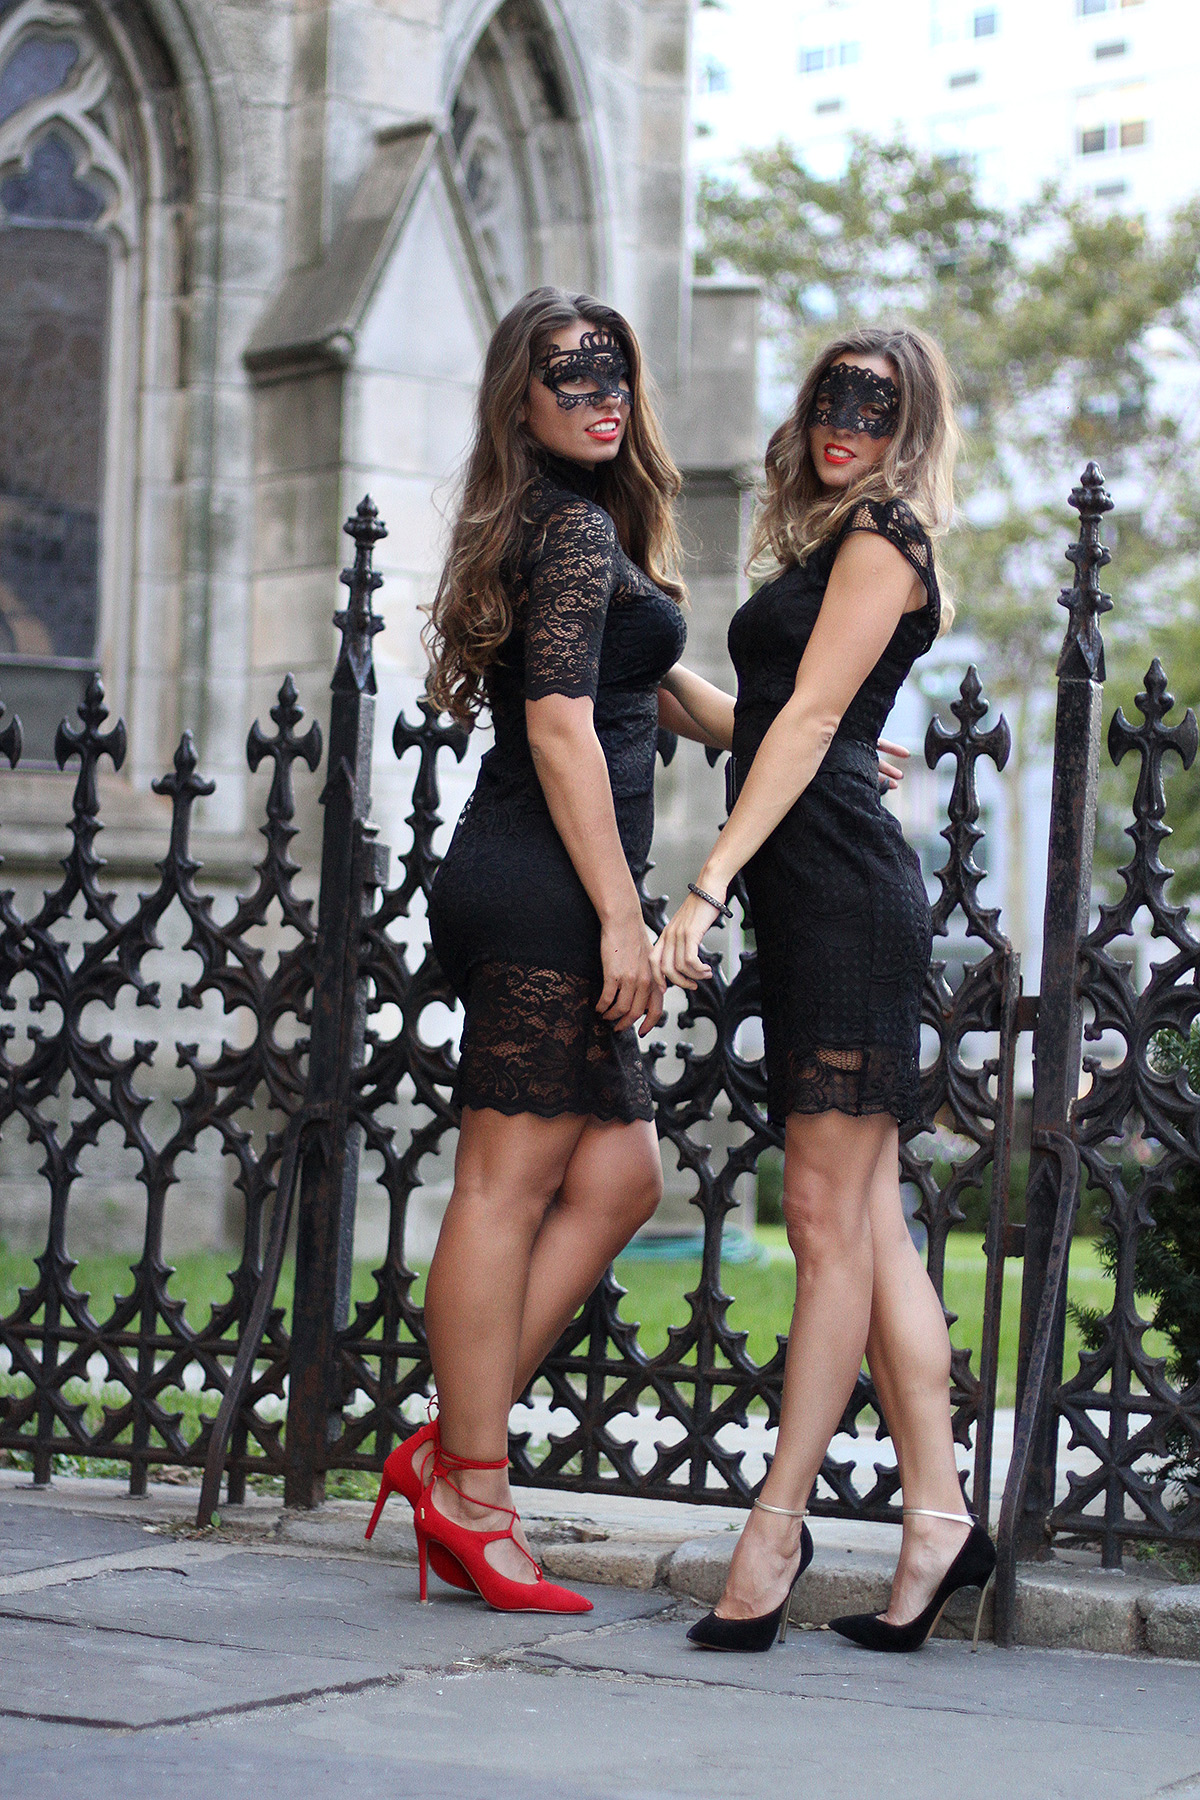 halloween-trend-witch-nyc-new-york-ny-blogger- & halloween costume ideas for couples friends best friends outfit ideas